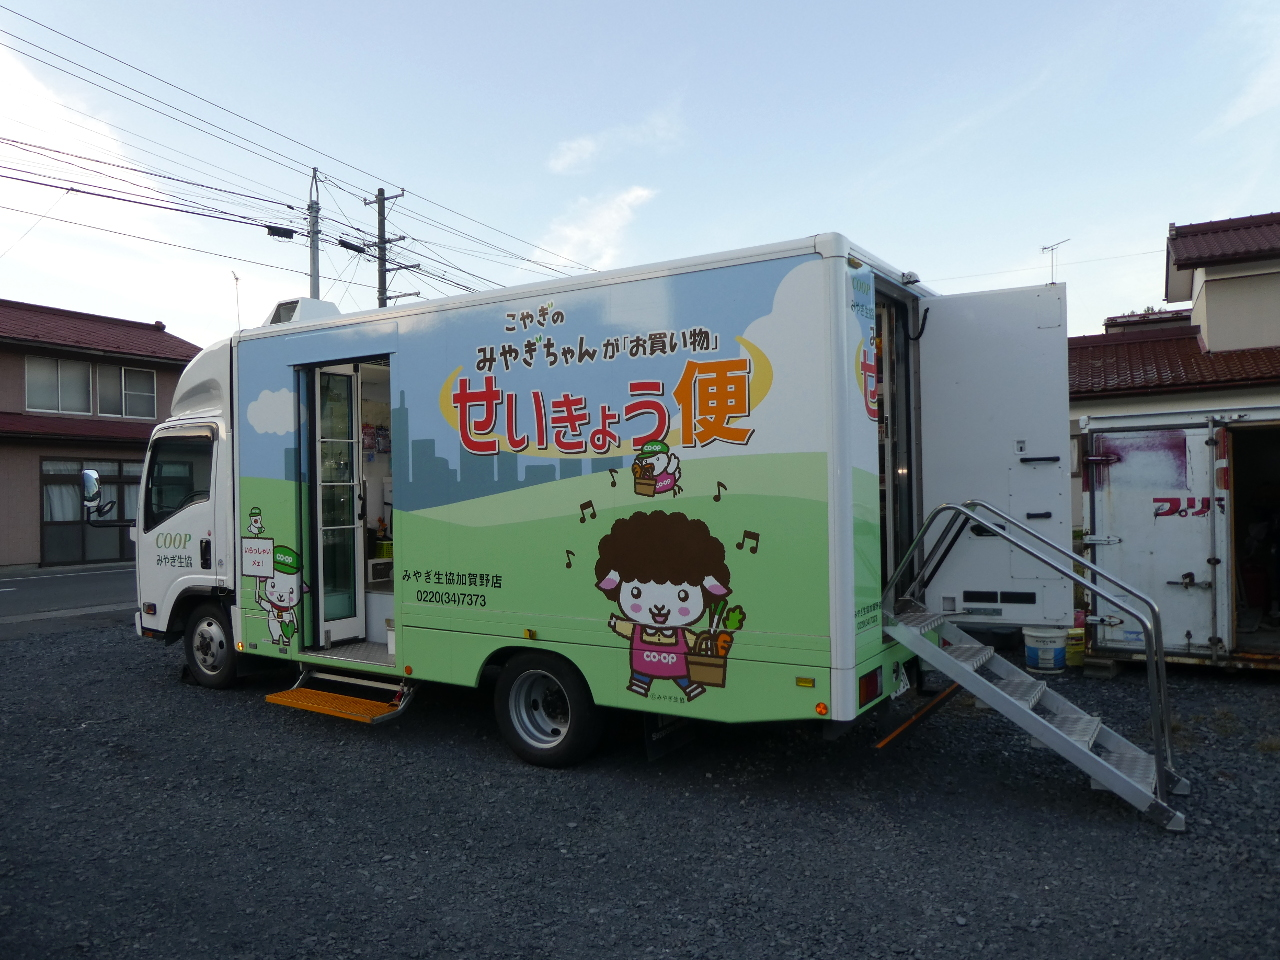 Mobile market in Yonekawa